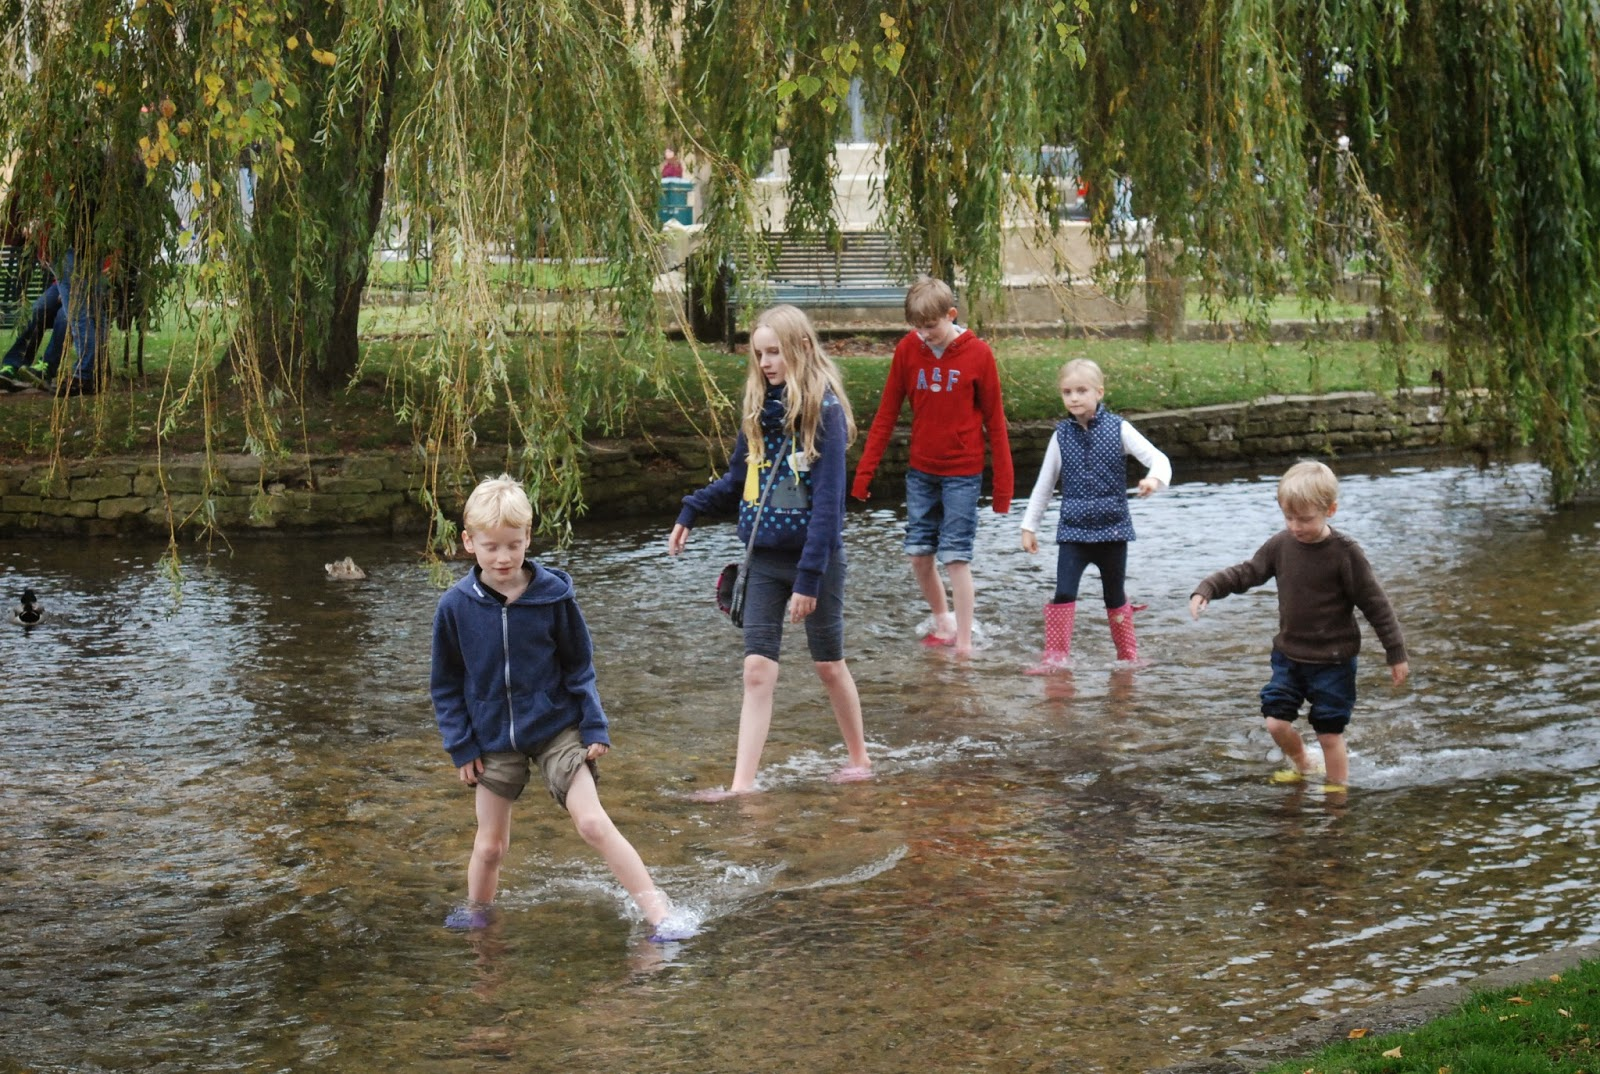 paddling in the river at Bourton-in-the-Water, Cotswolds